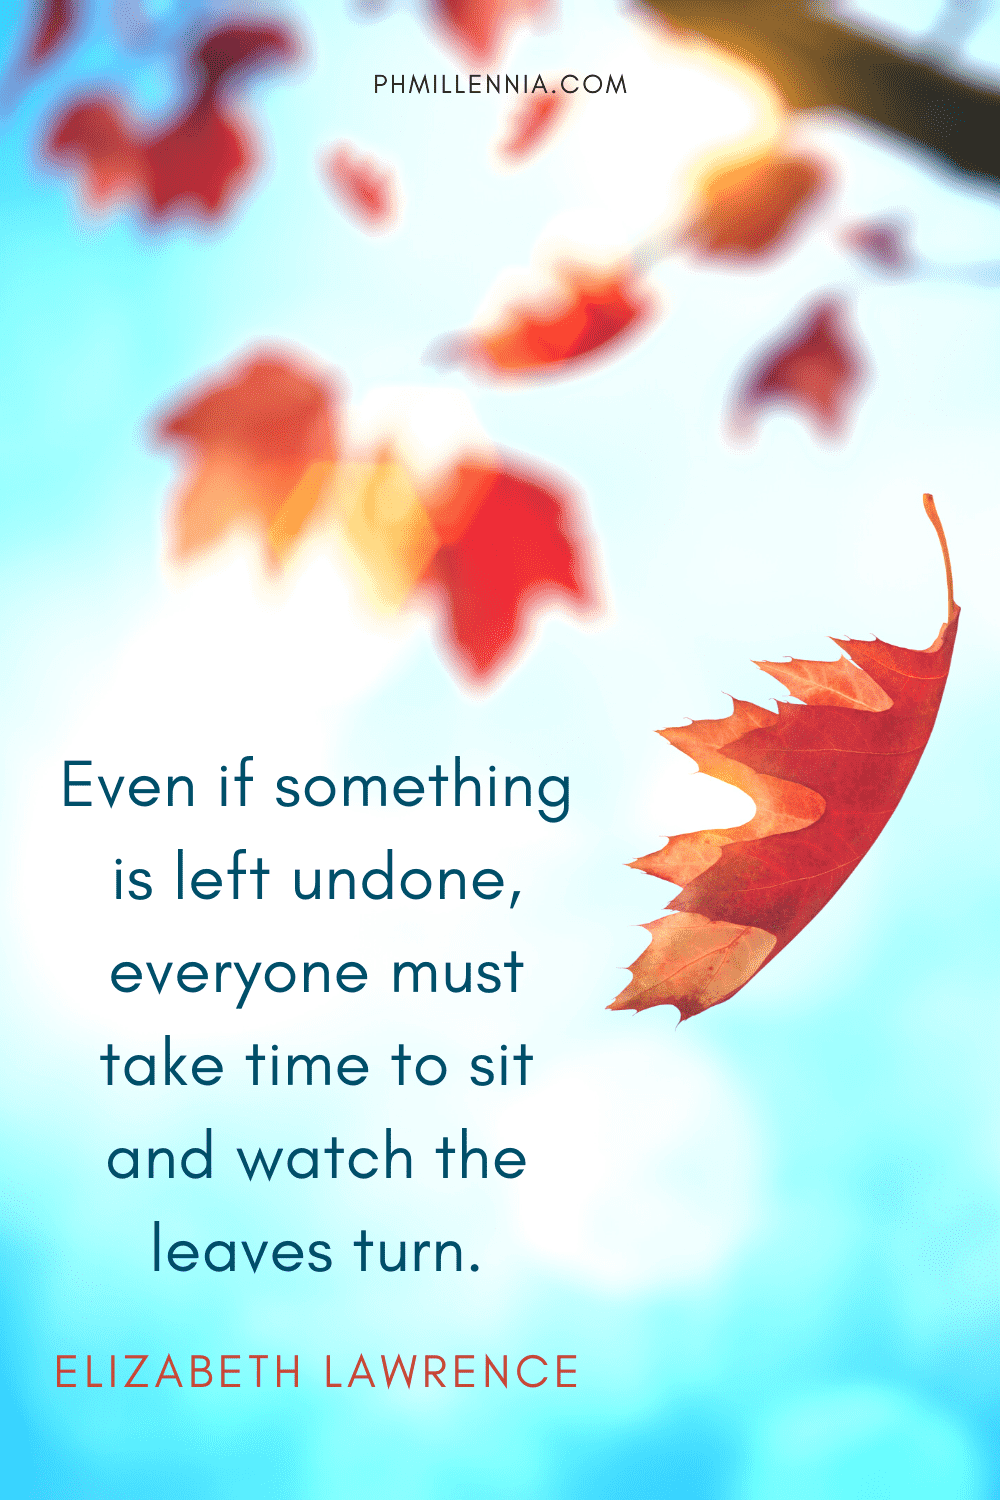 A graphic featuring an autumn quote/fall saying over an image of red leaves falling from a branch in autumn/fall season